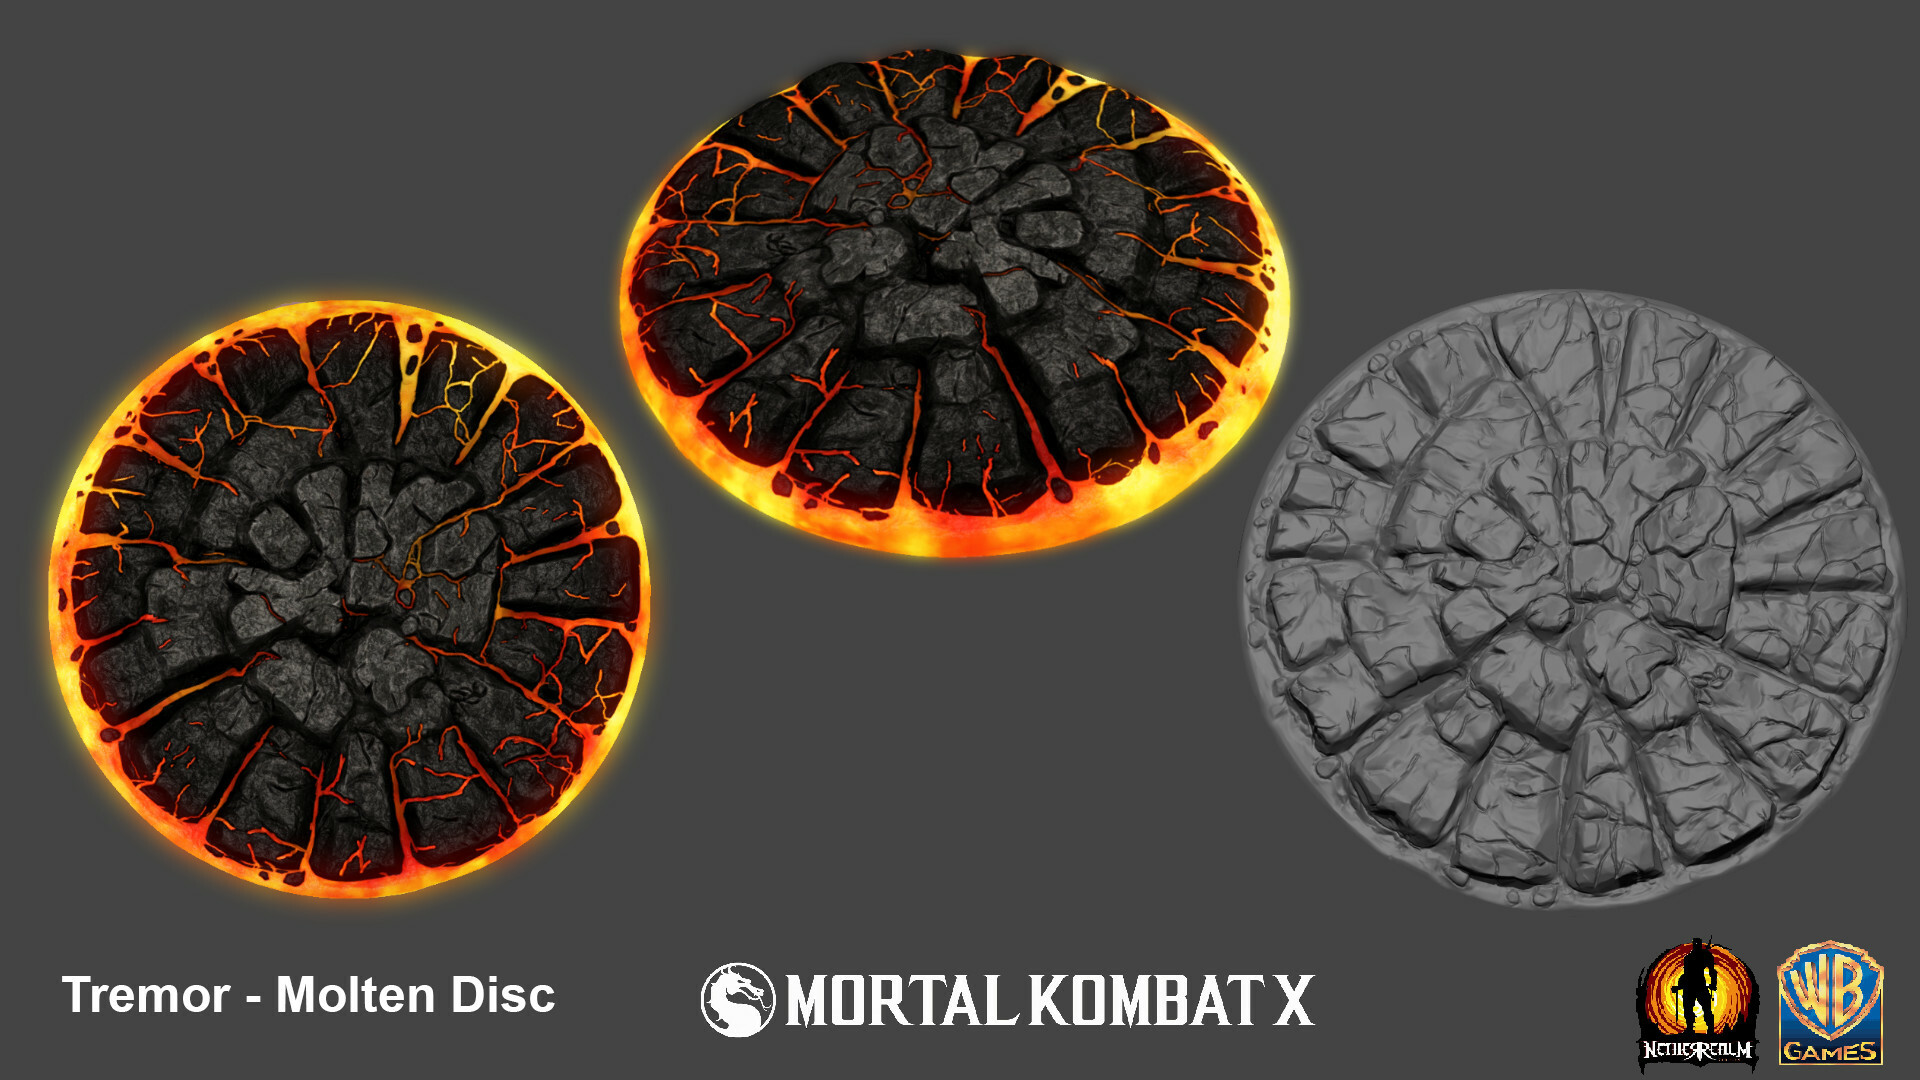 Molten disc weapon for Tremor.